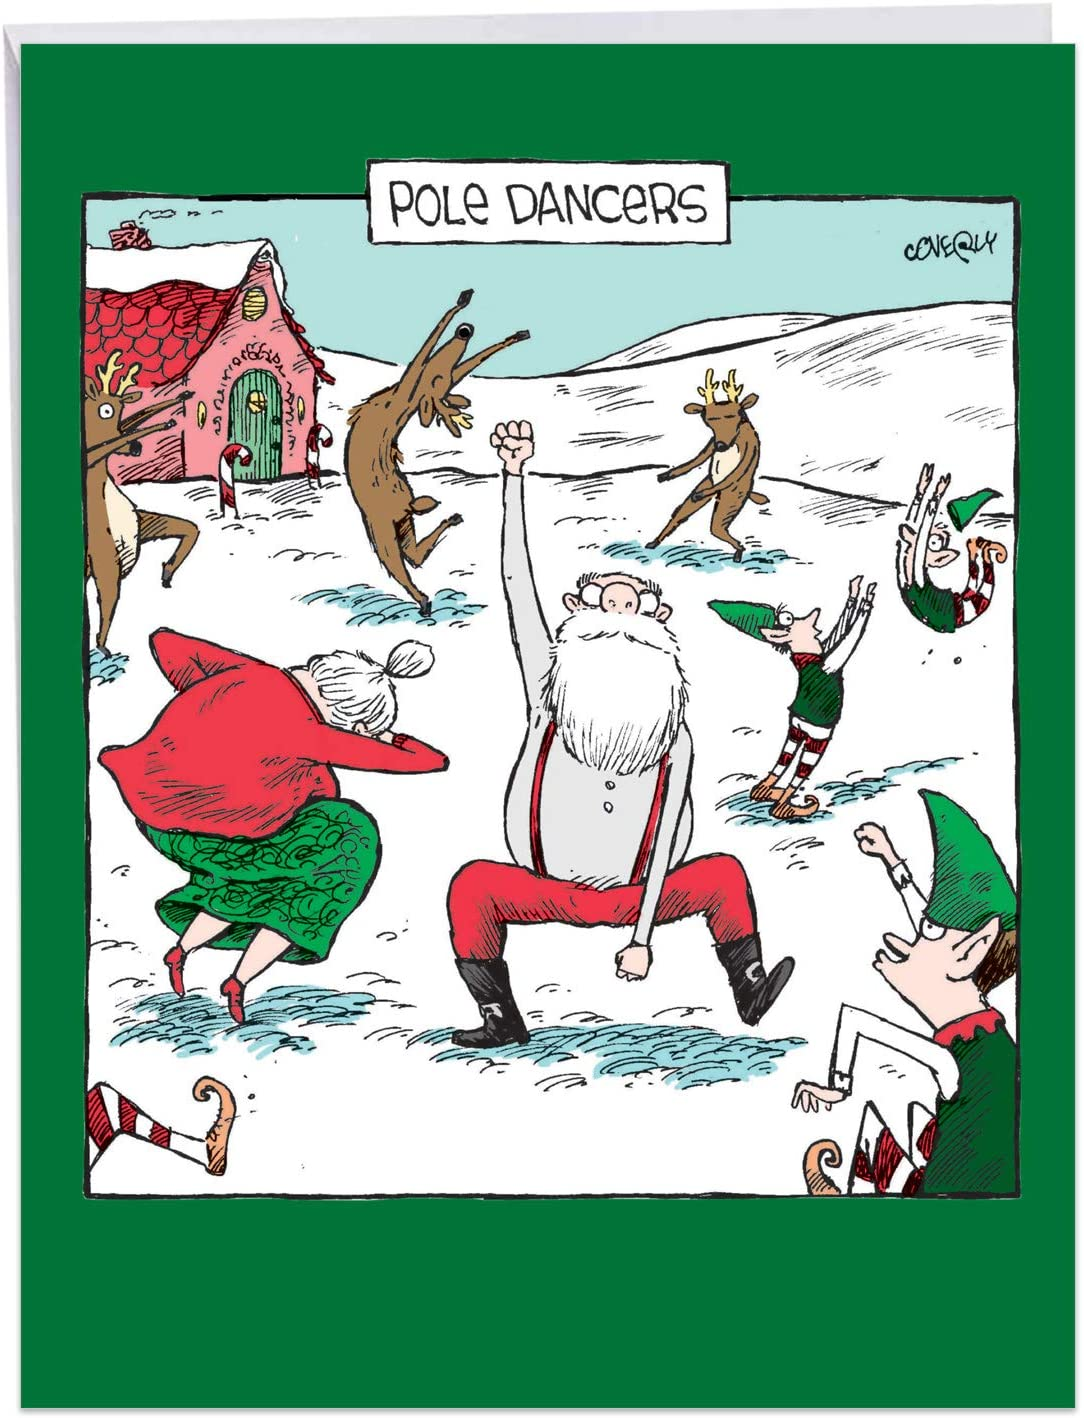 Pole Dancers - Hilarious Merry Christmas Greeting Card with Envelope (Big 8.5 x 11 Inch) - Dancing Santa Claus and Elves, North Pole Humor - Xmas Happy Holidays Notecard From All of Us J7082XSG-US